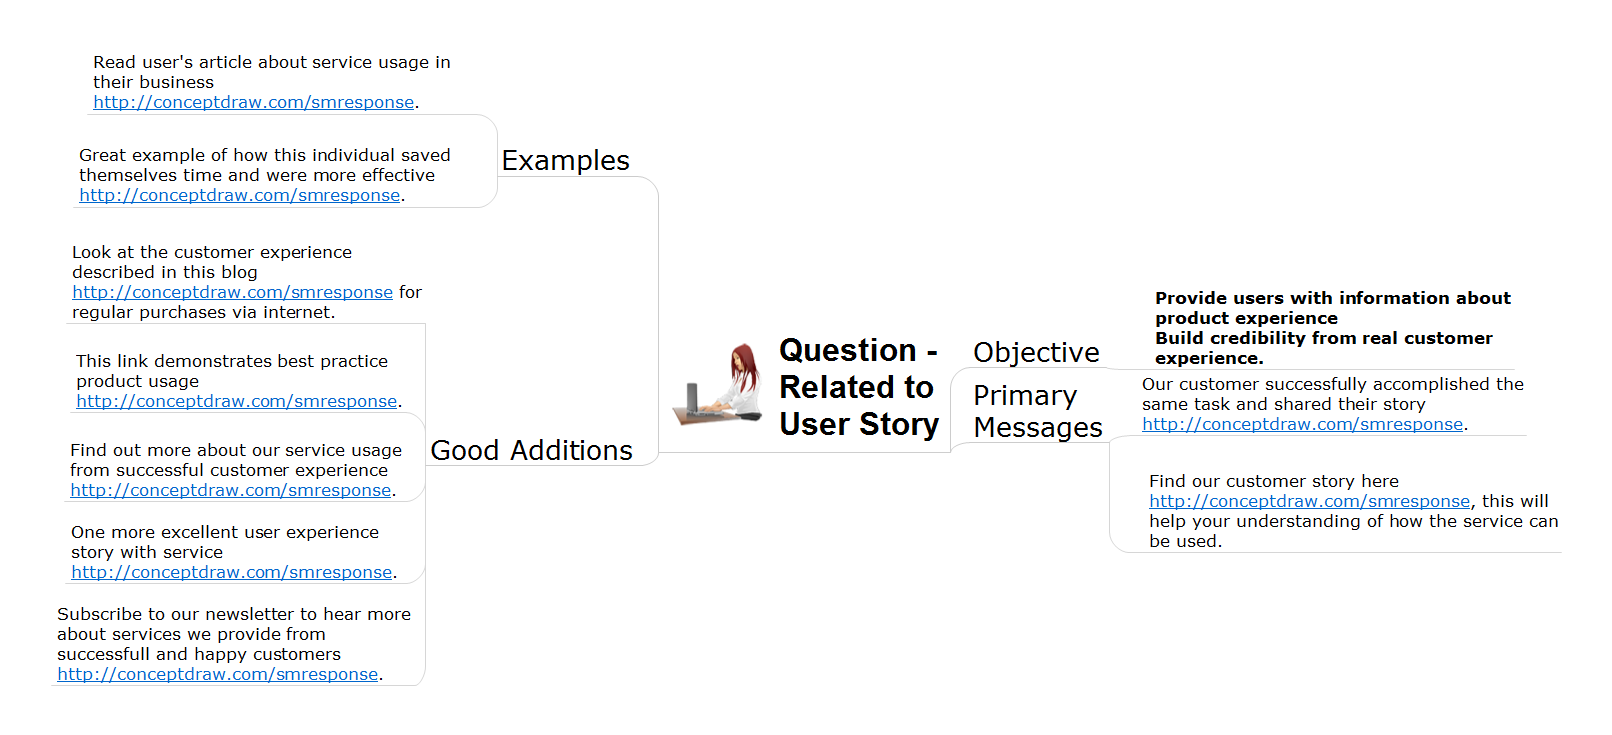 Action mindmap - Address to user story question